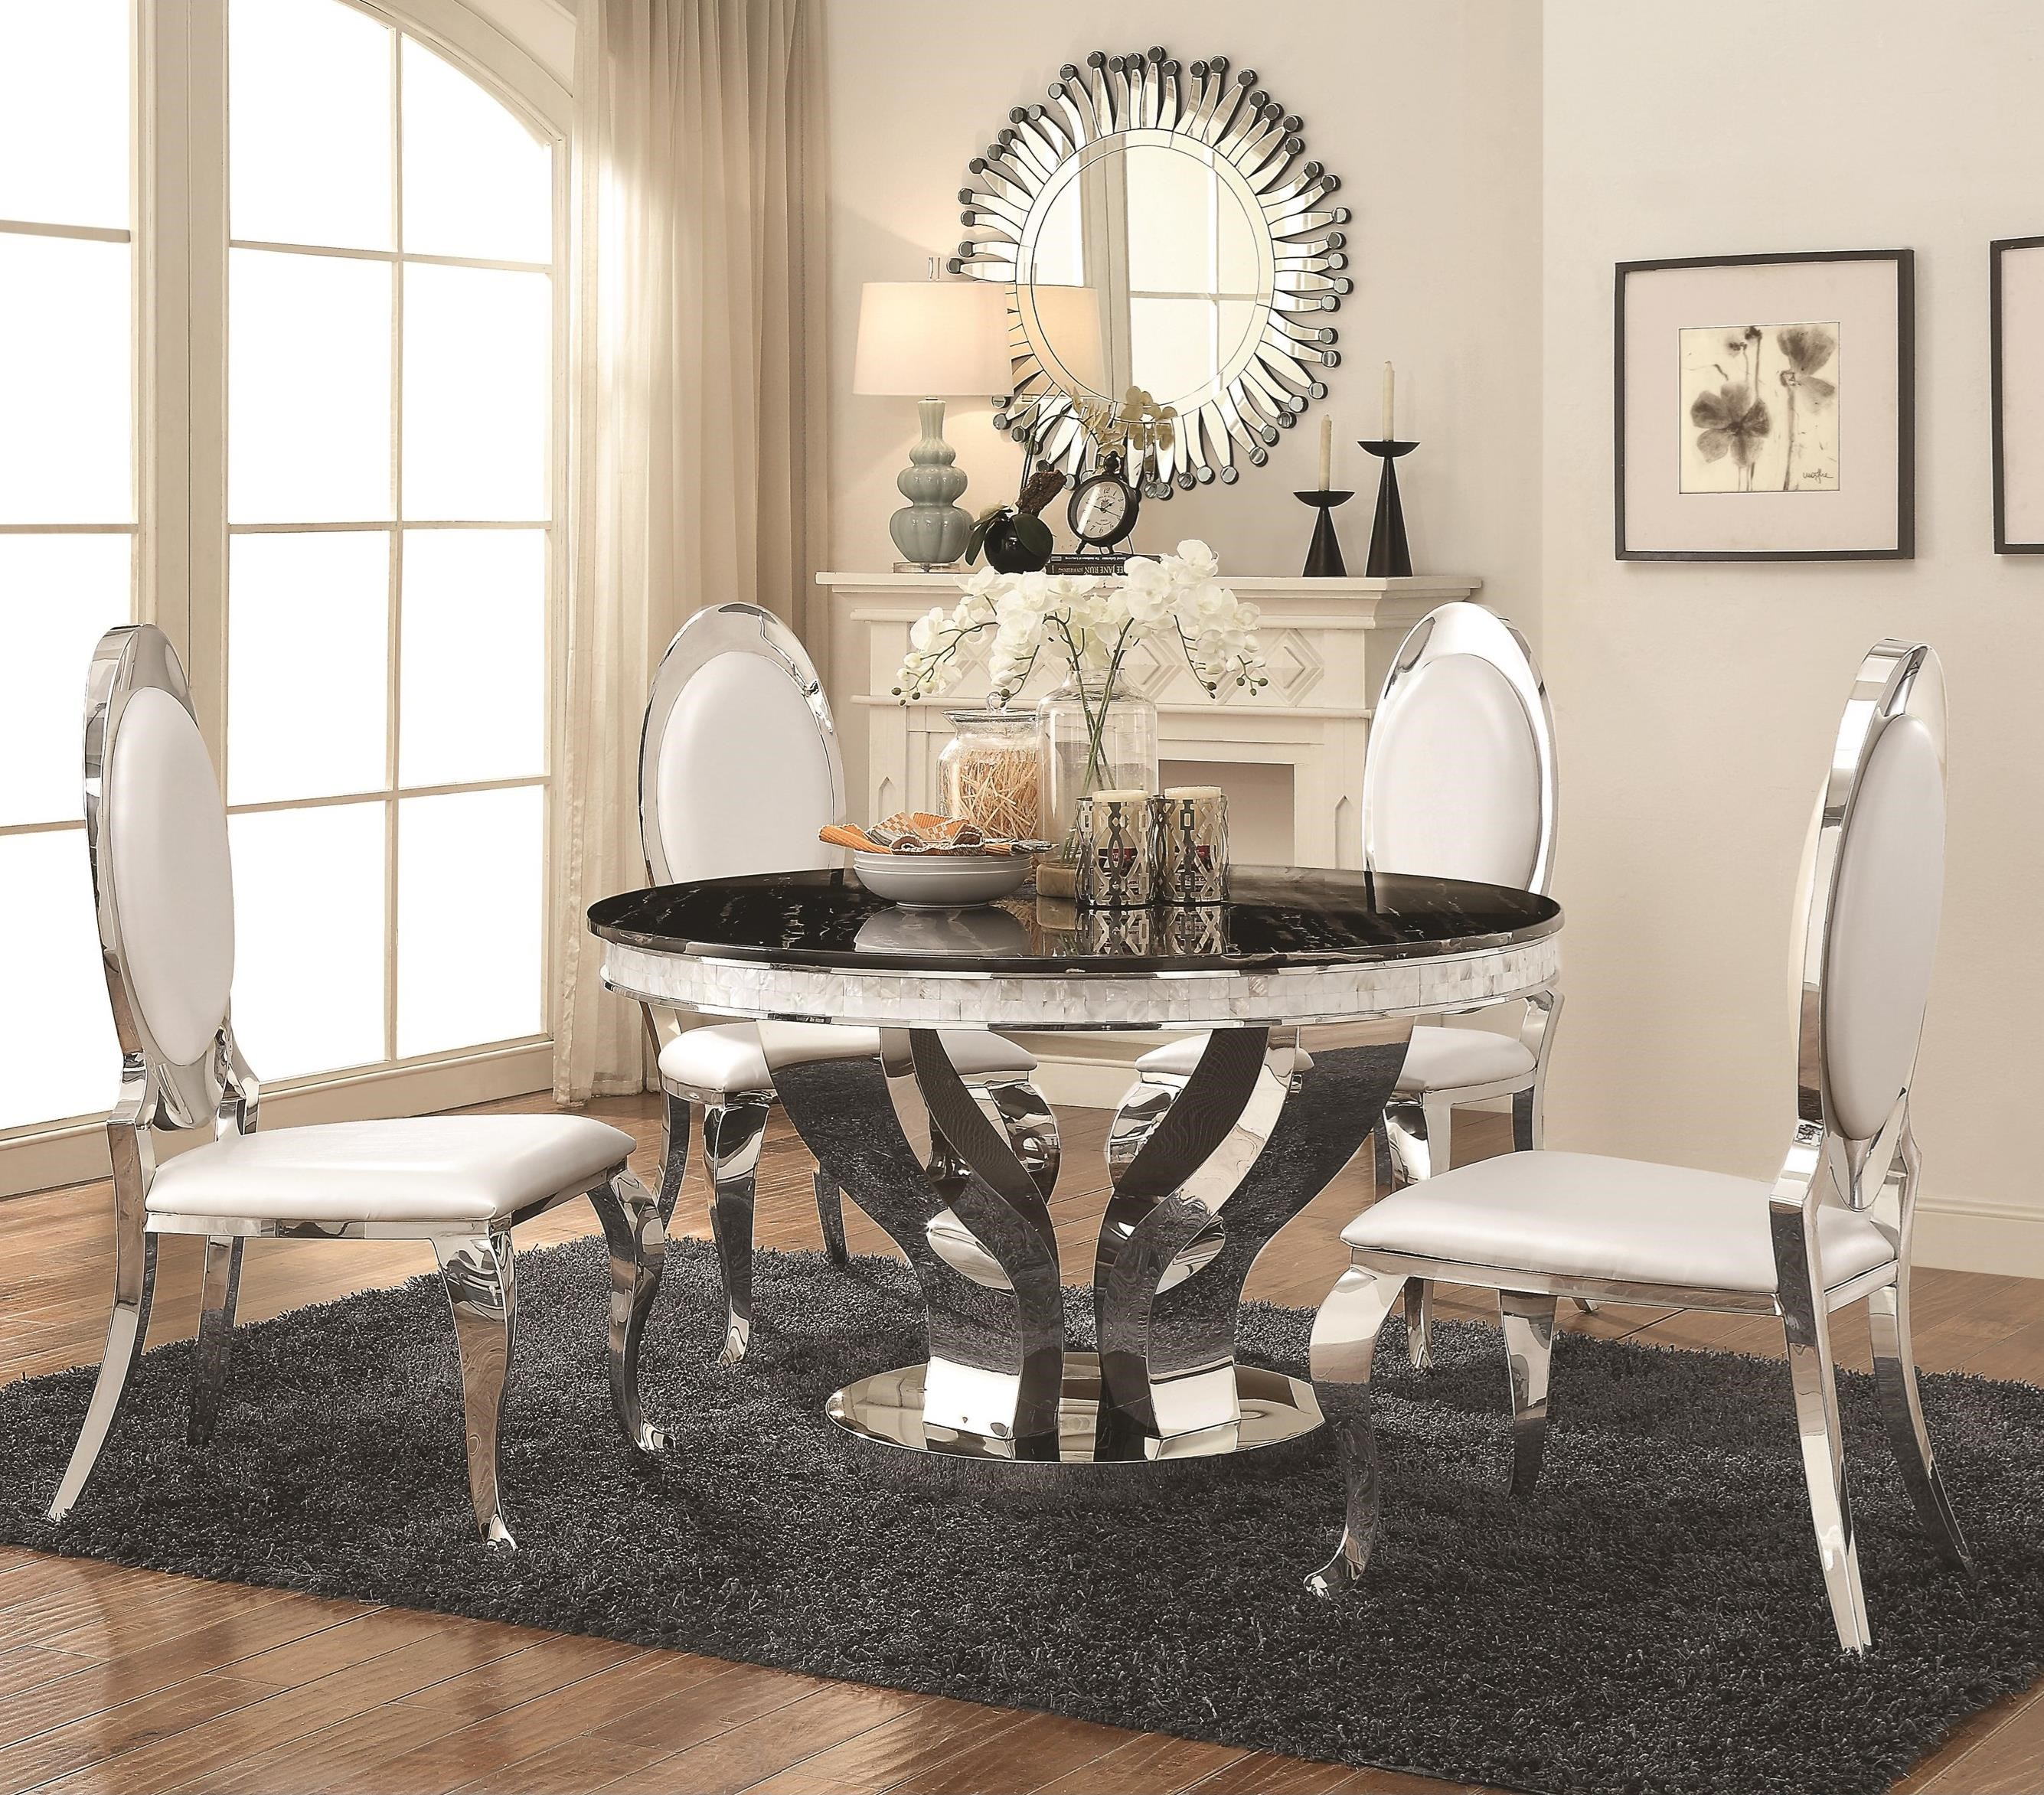 Dining Room Sets Dallas Tx: Coaster Anchorage 5pc Chrome Dining Table Set Dallas TX